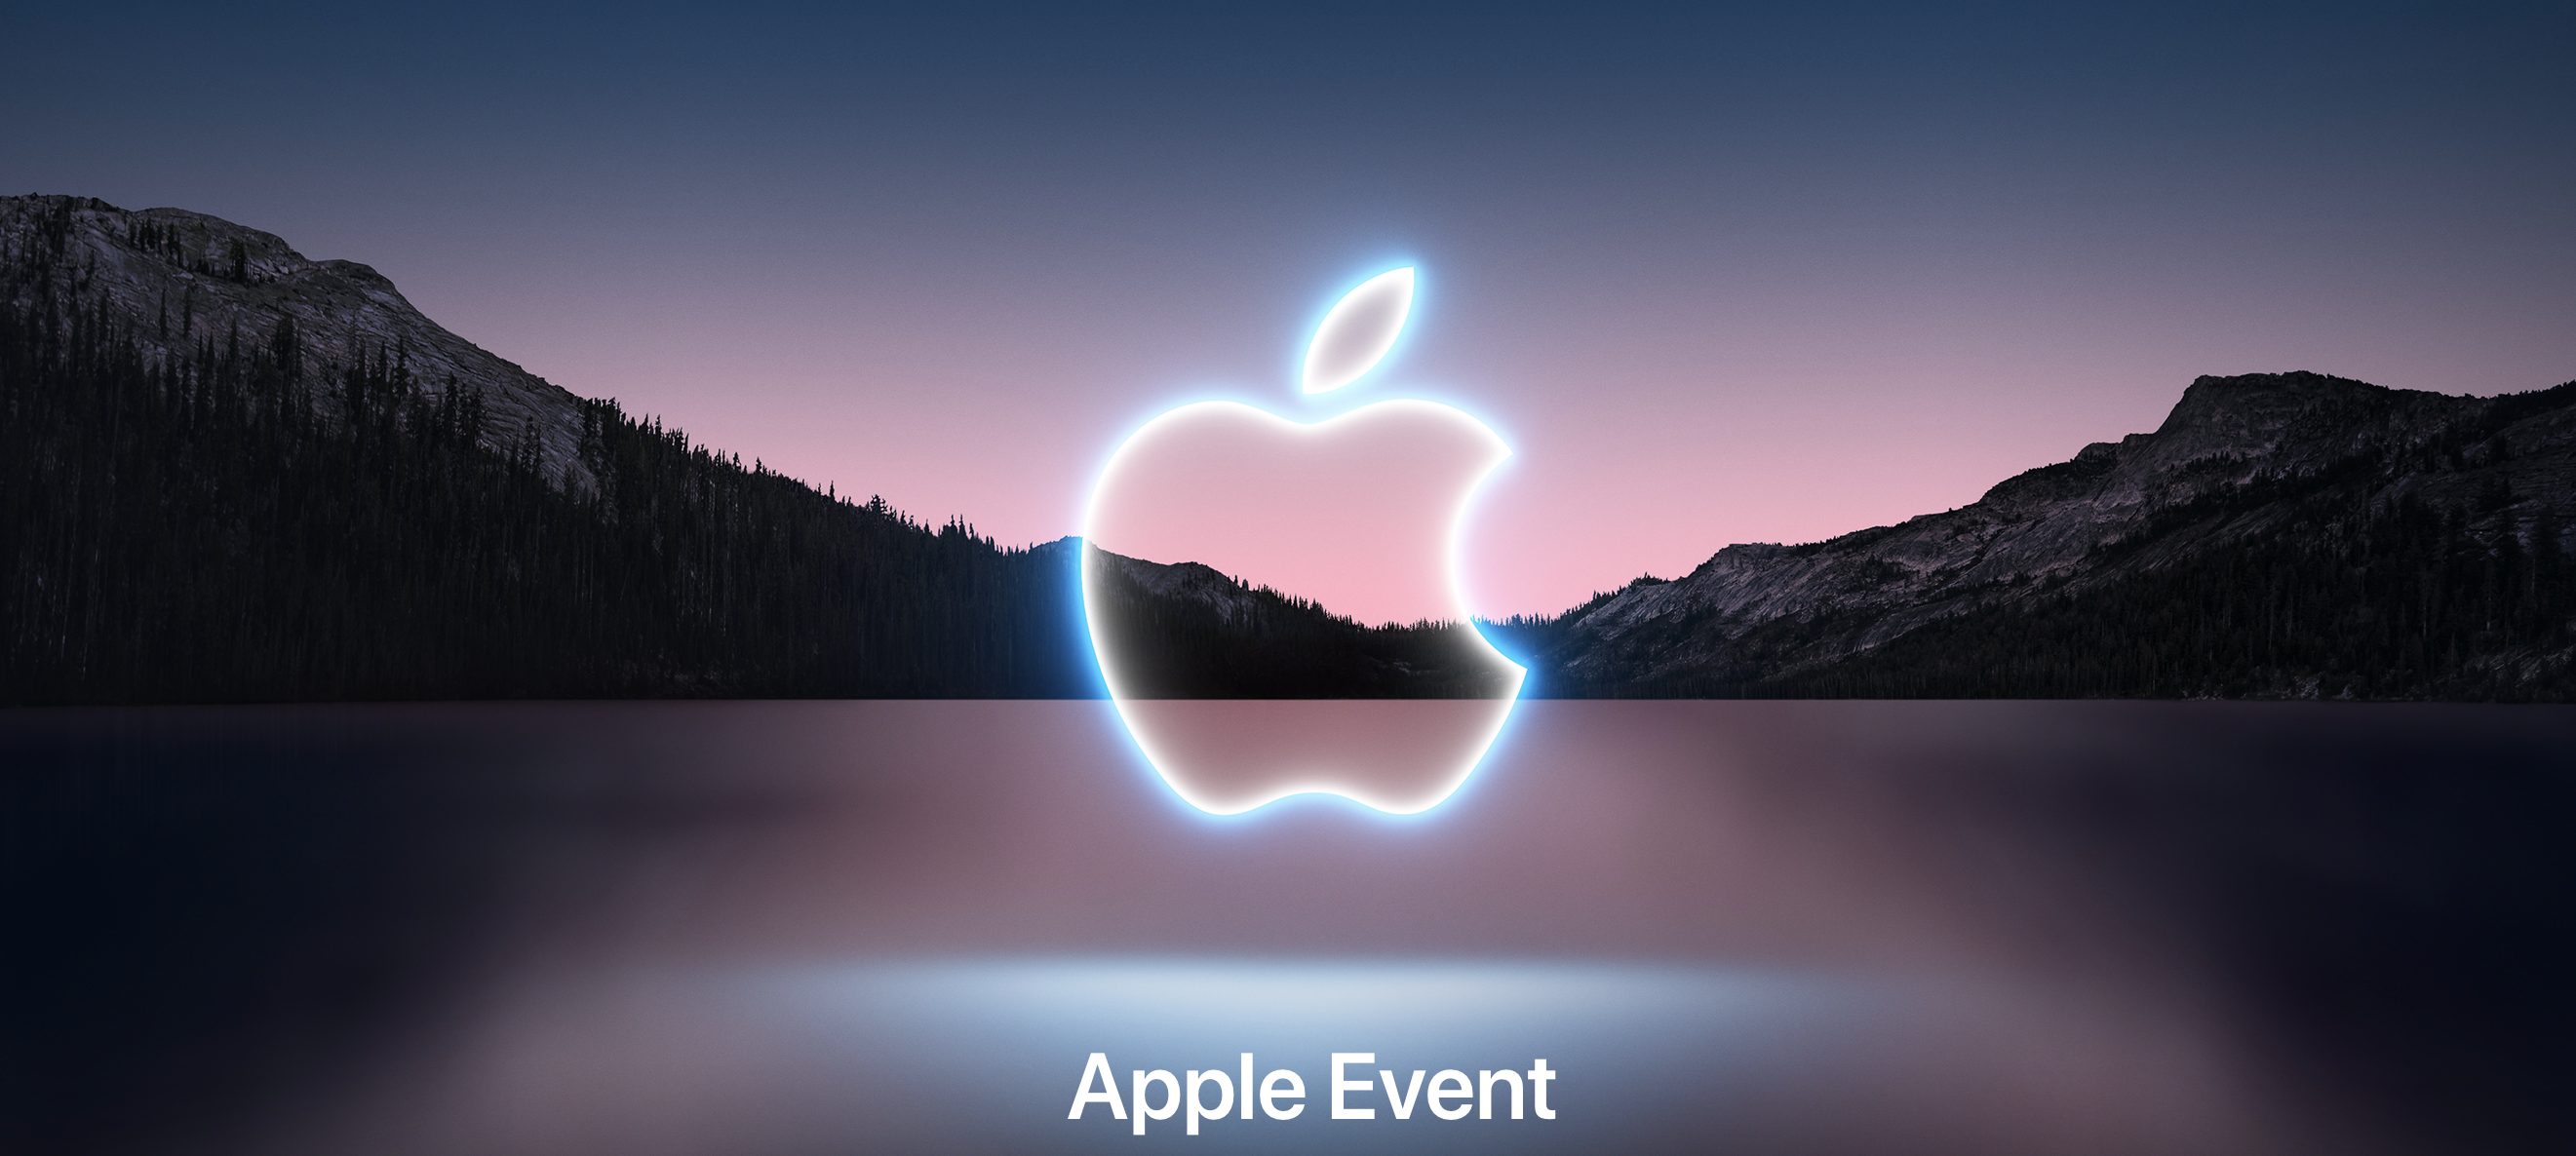 Screenshot 2021 09 14 at 8.13.48 PM - WATCH iPhone 13 Apple event